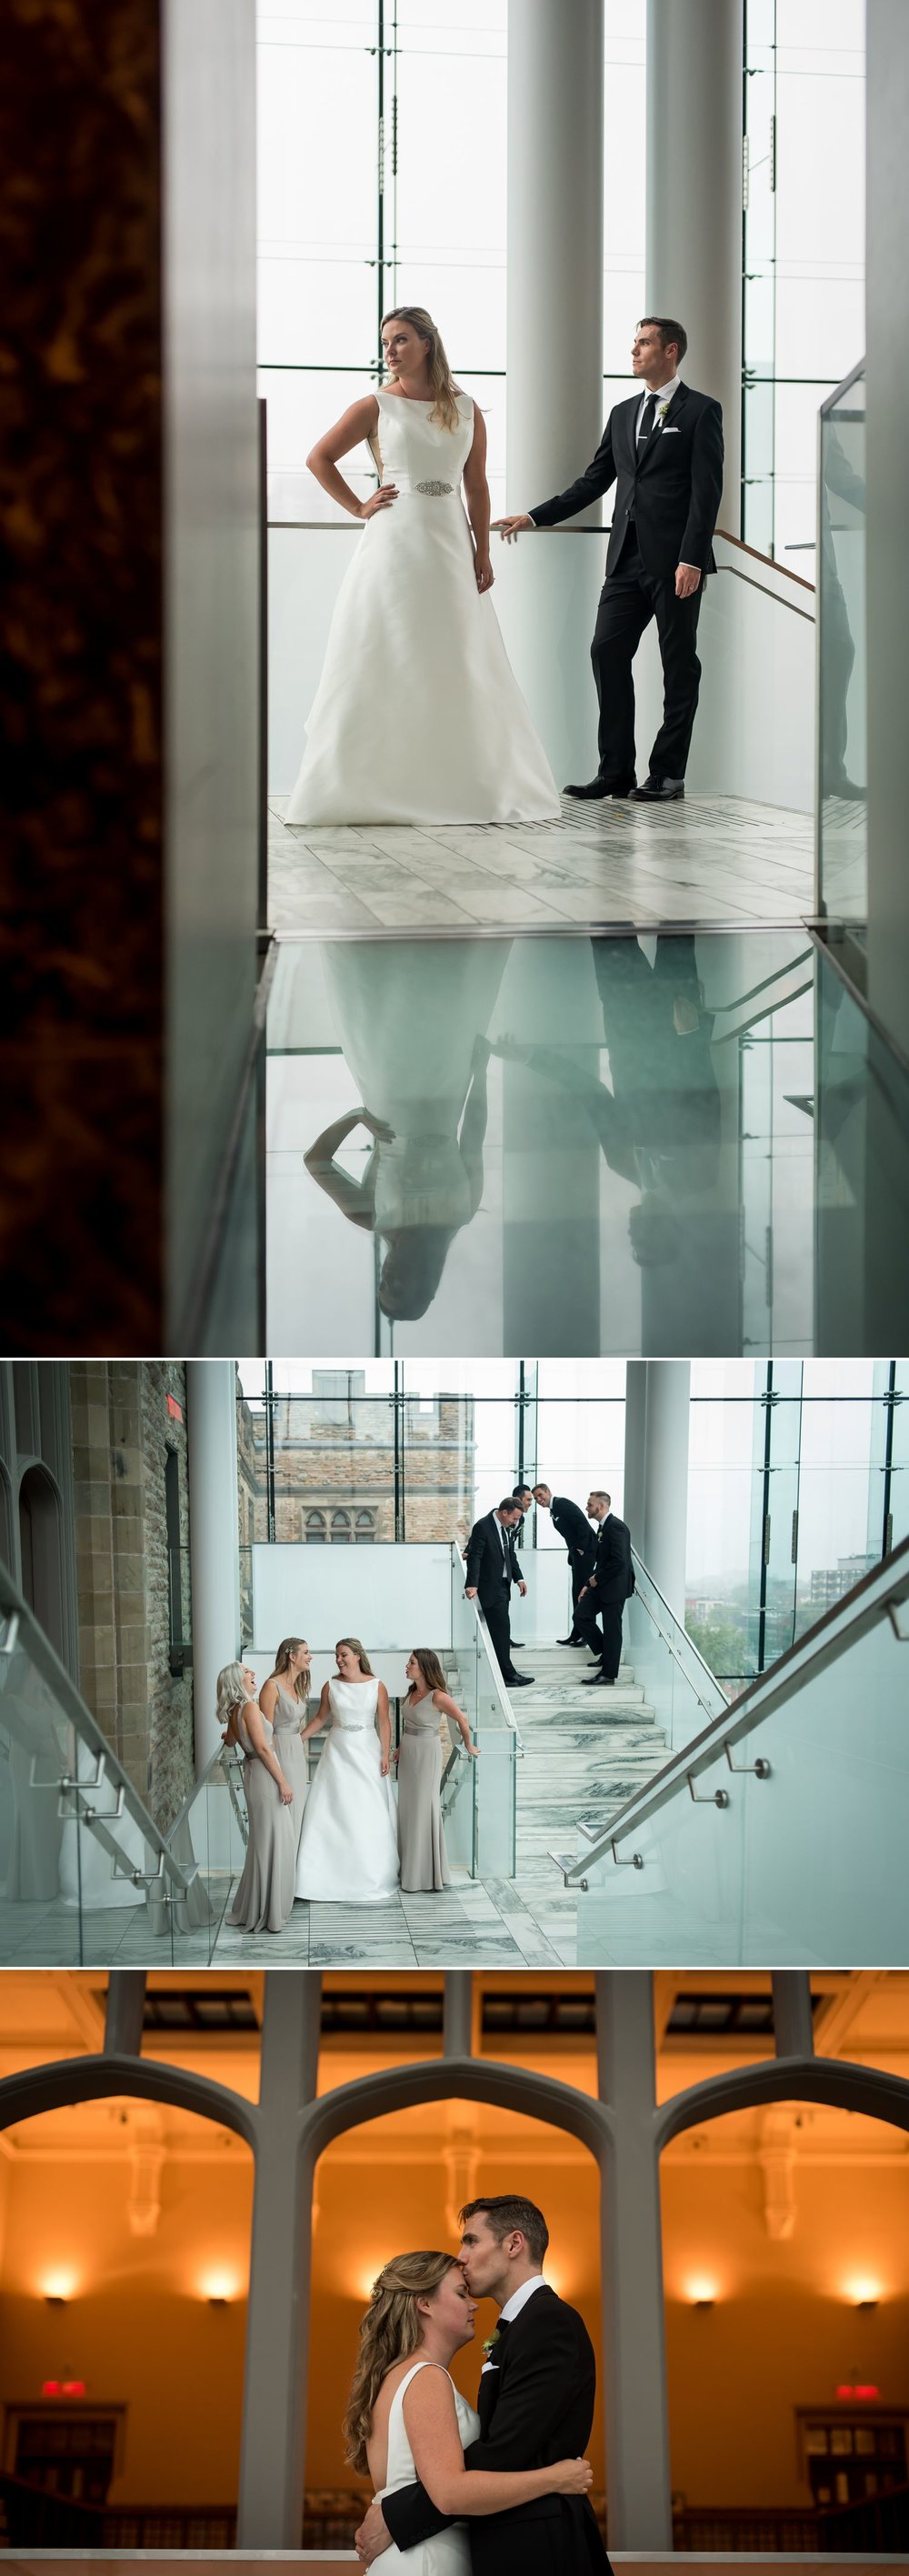 Portraits of the bride and groom and their wedding party at the Museum of Nature